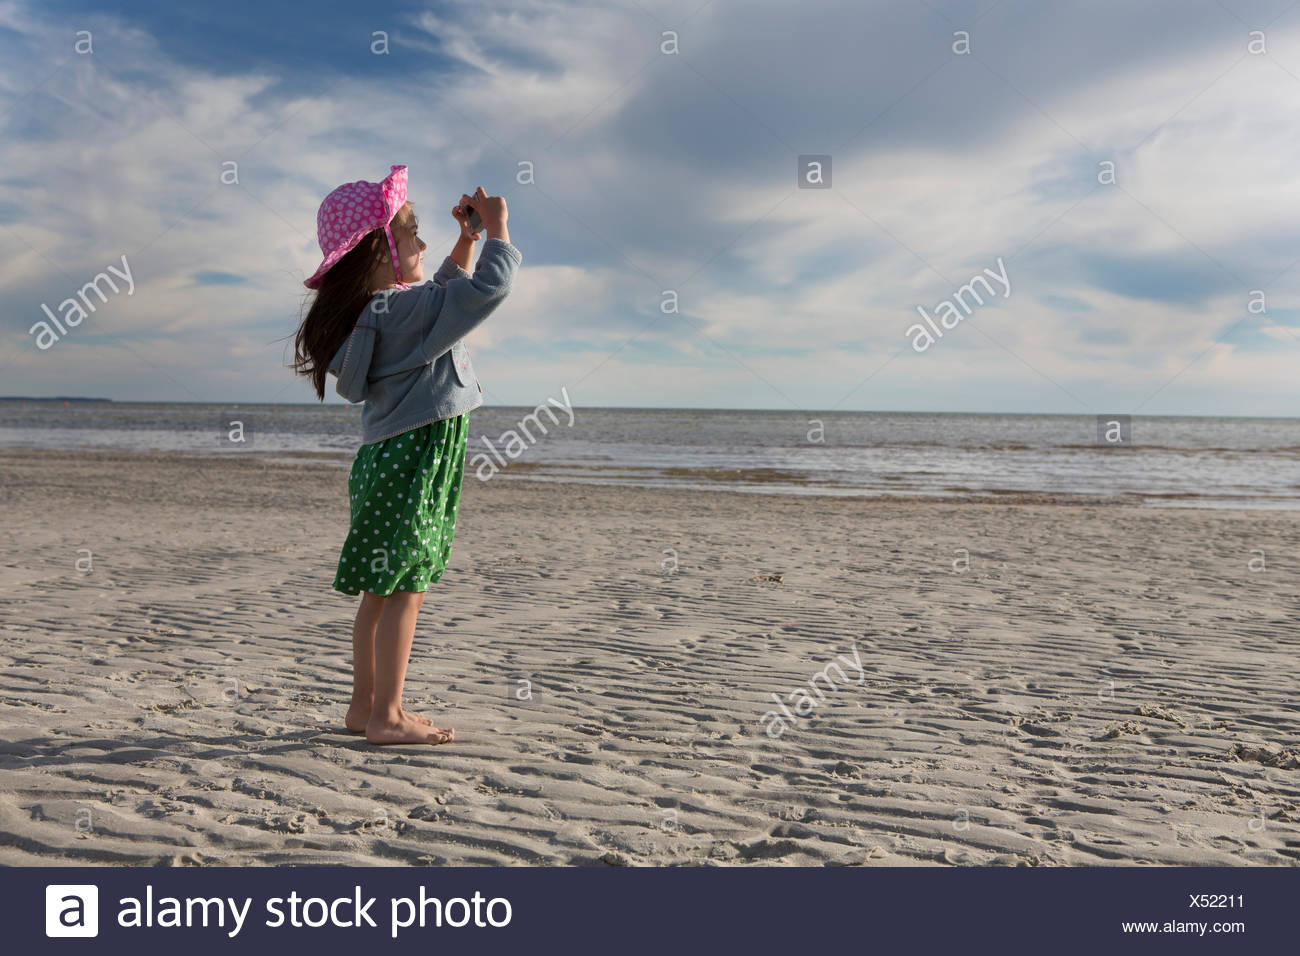 A young girl takes photographs at Skaket Beach. - Stock Image